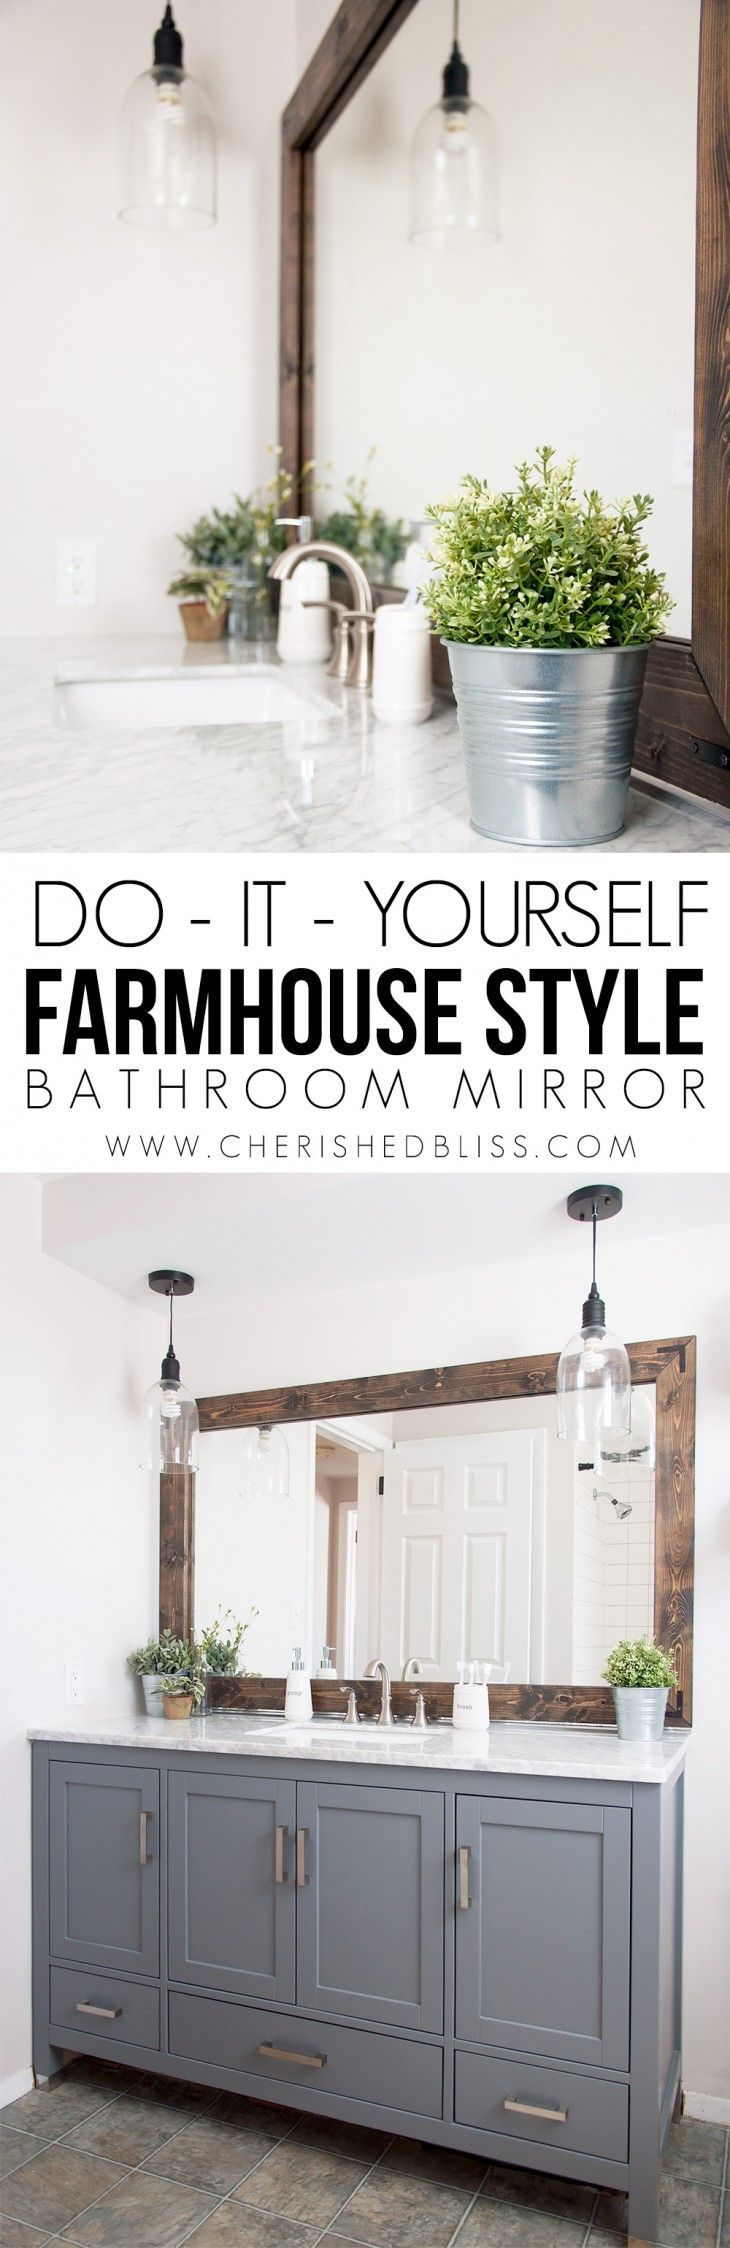 Downstairs Bathroom Decorating Ideas best 25+ diy bathroom ideas ideas on pinterest | bathroom storage